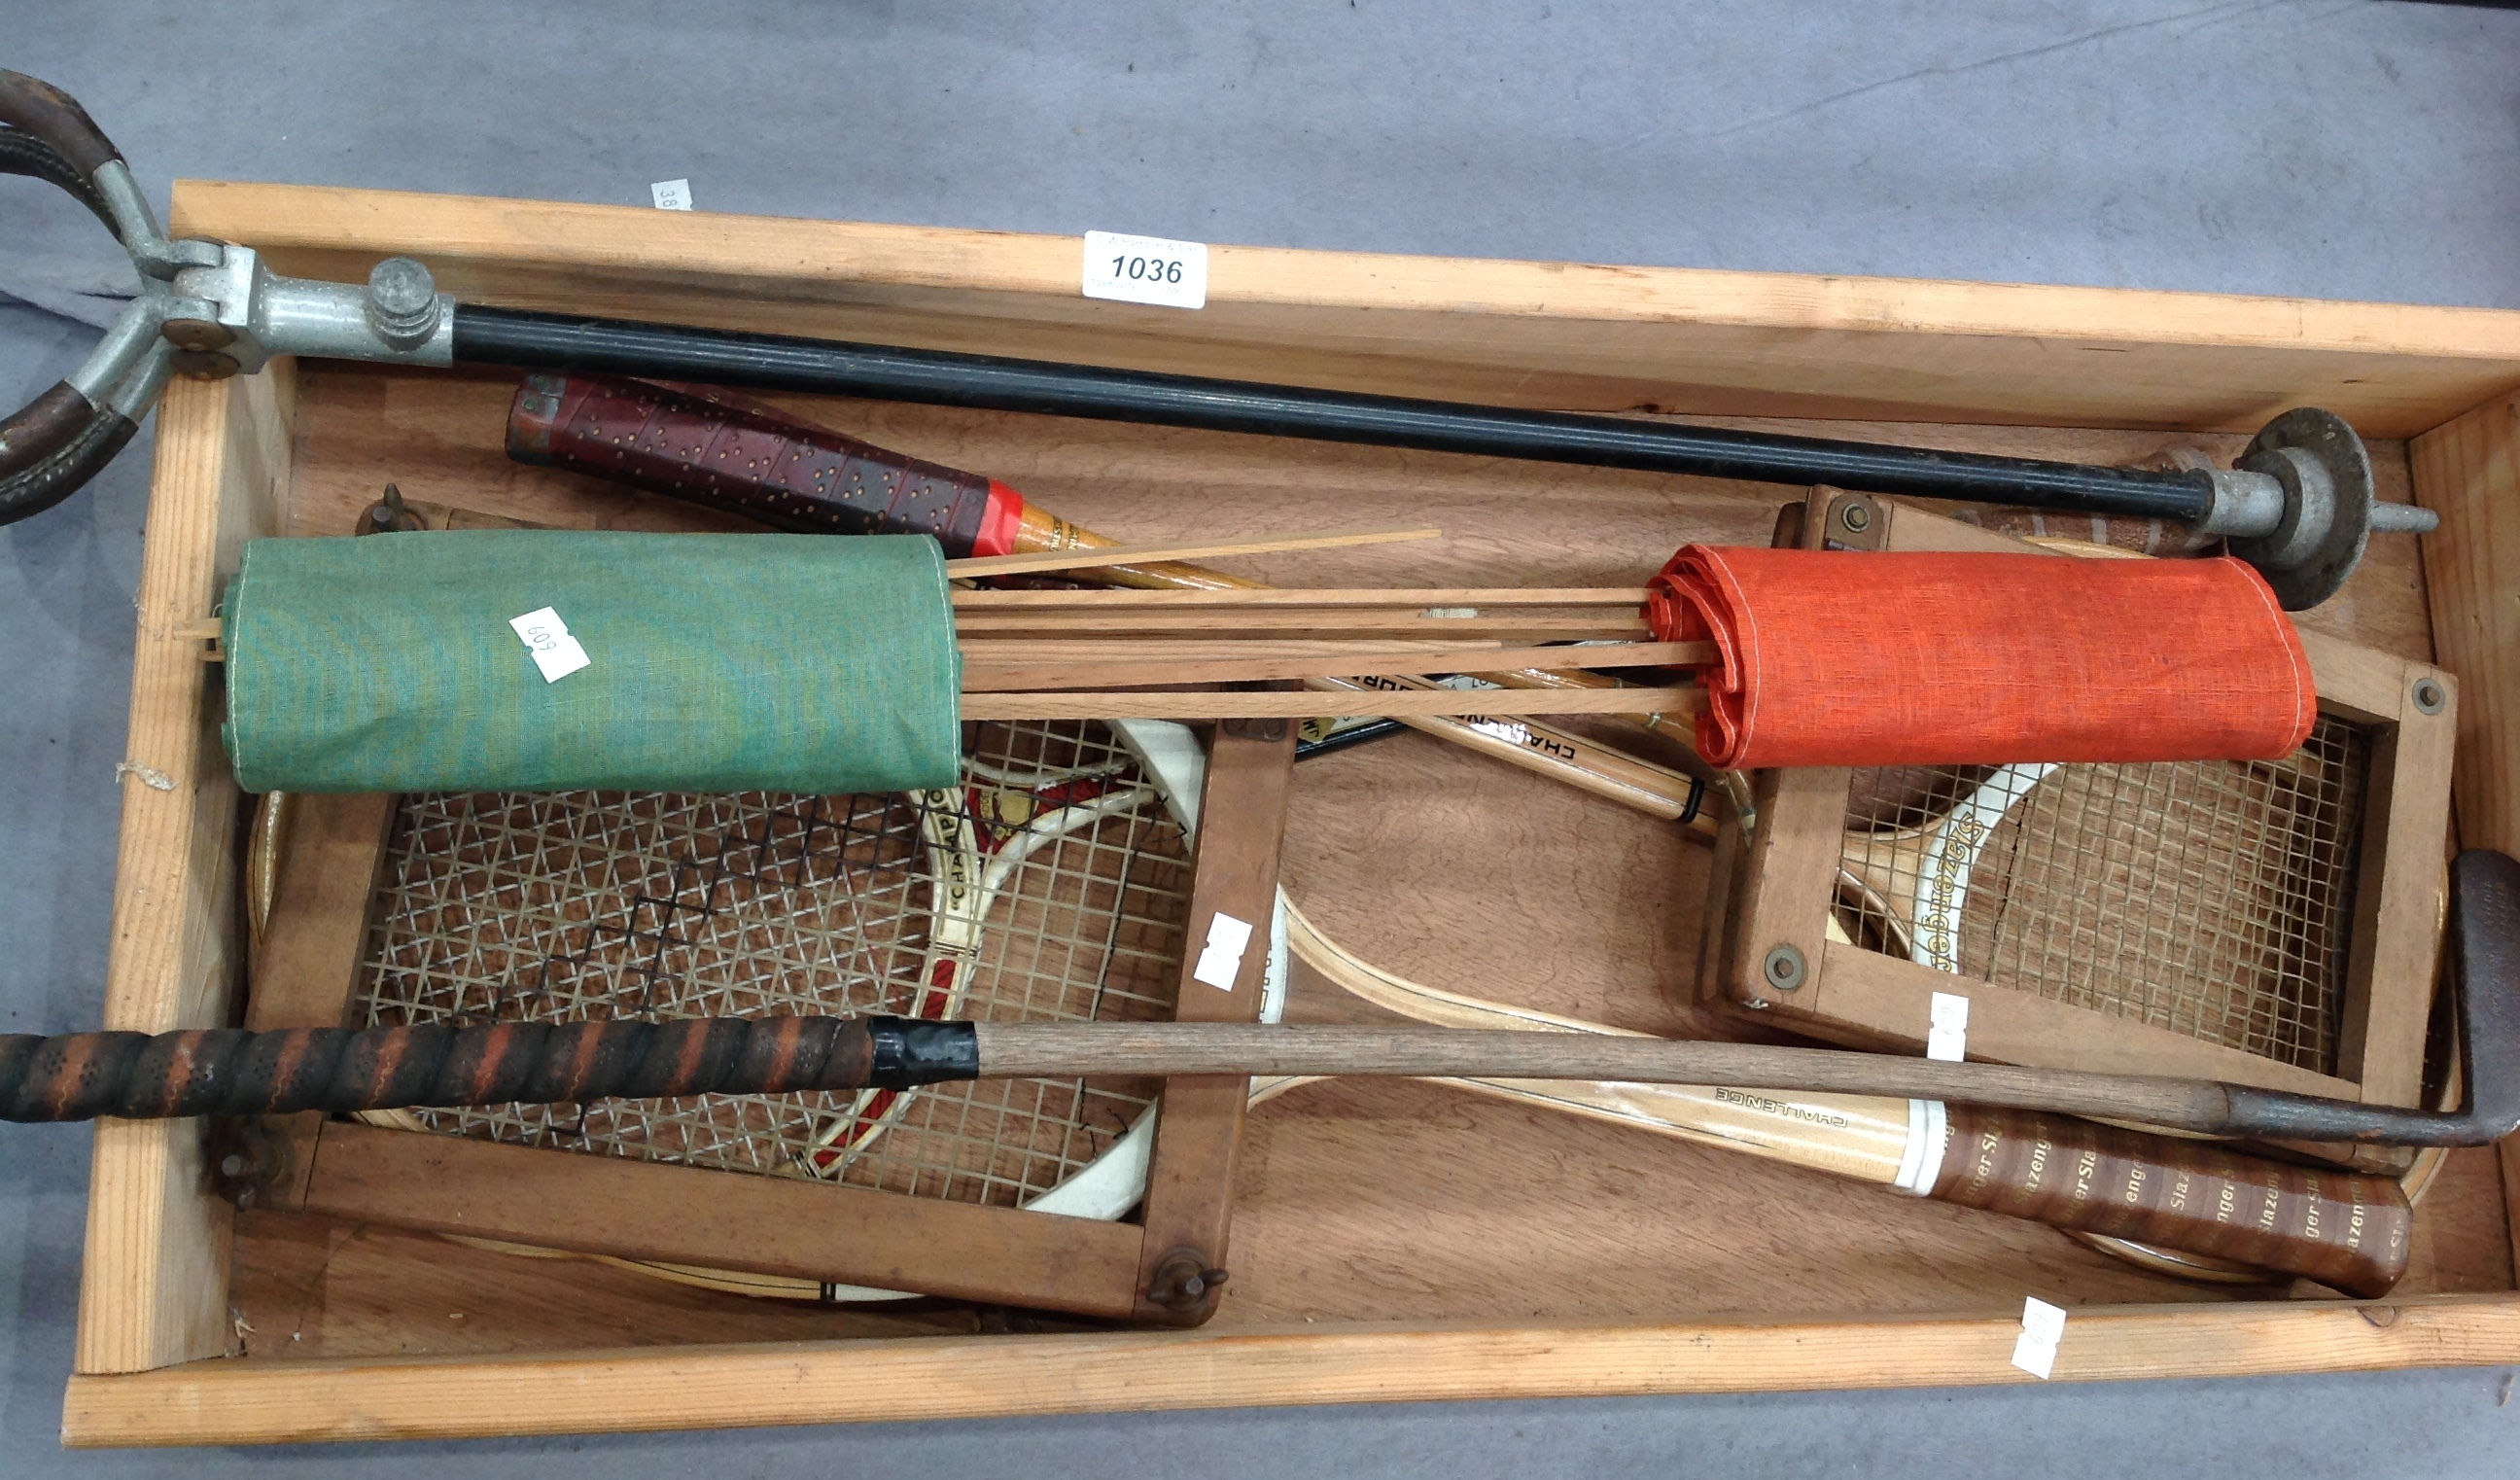 Lot 1036 - Contents to tray - Slazenger tennis racquet, kite, shooting stick, old golf club,